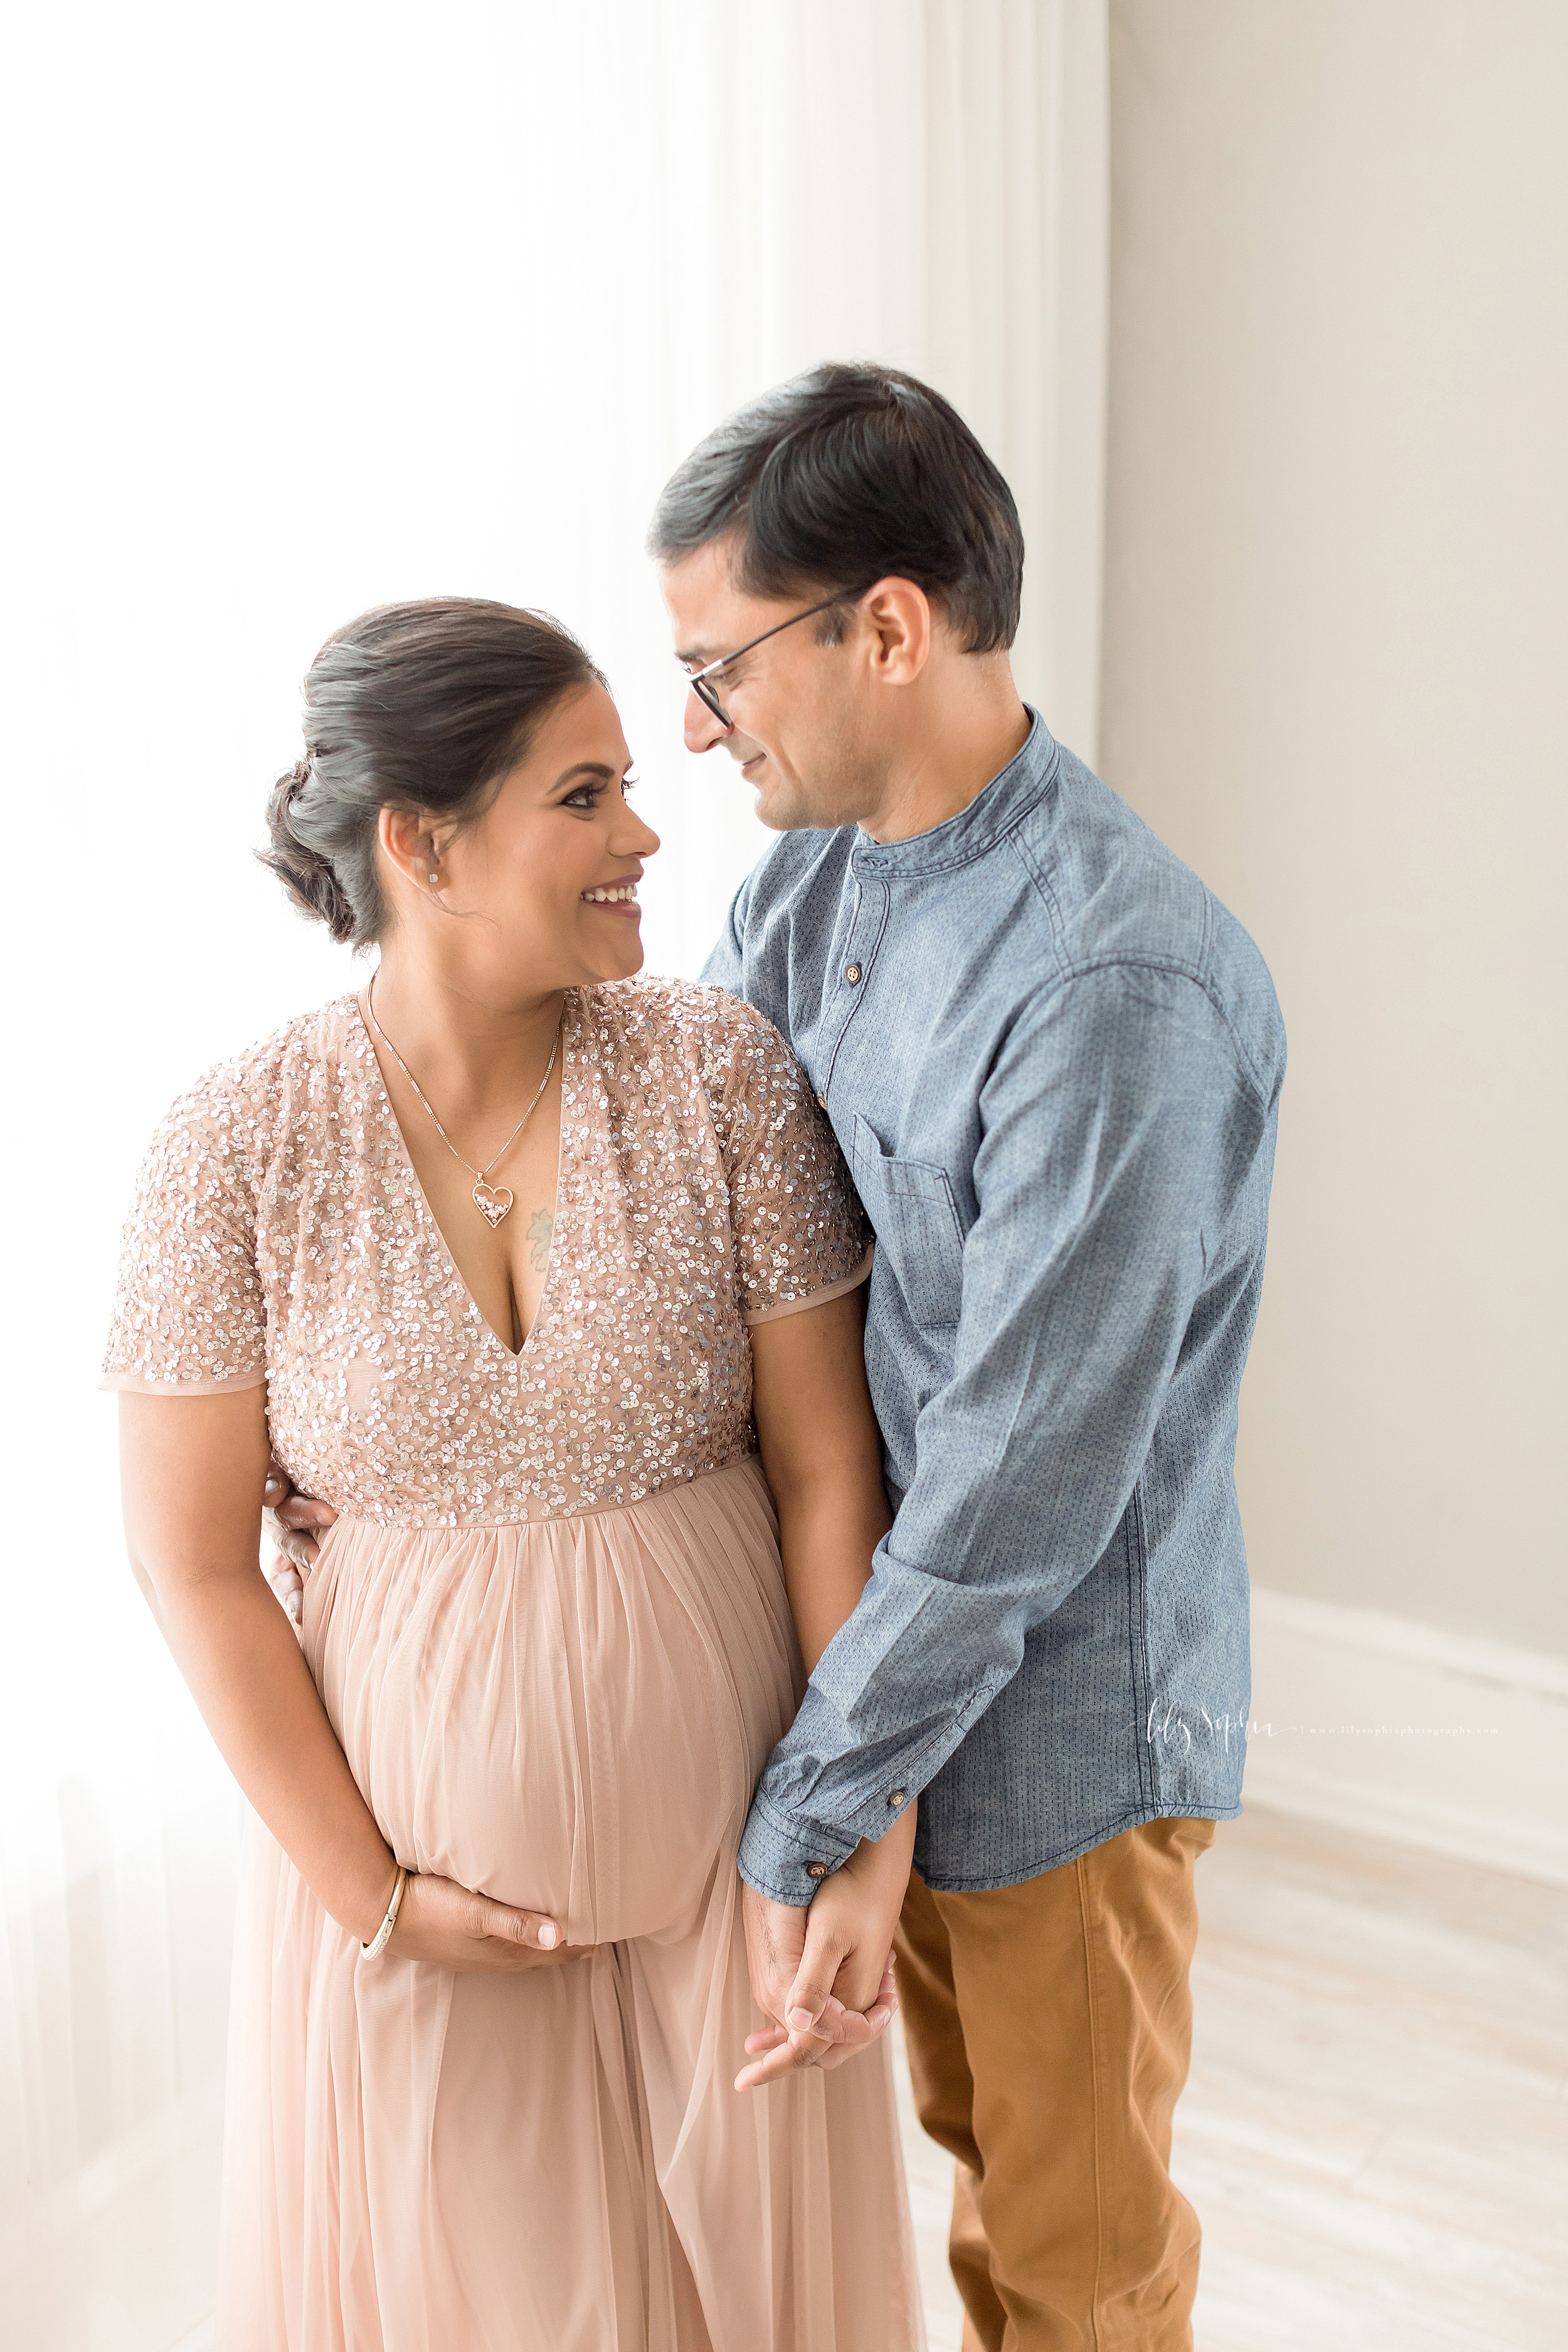 Maternity photo of an Indian husband and wife as they hold hands and smile at one another in a natural light Atlanta studio.